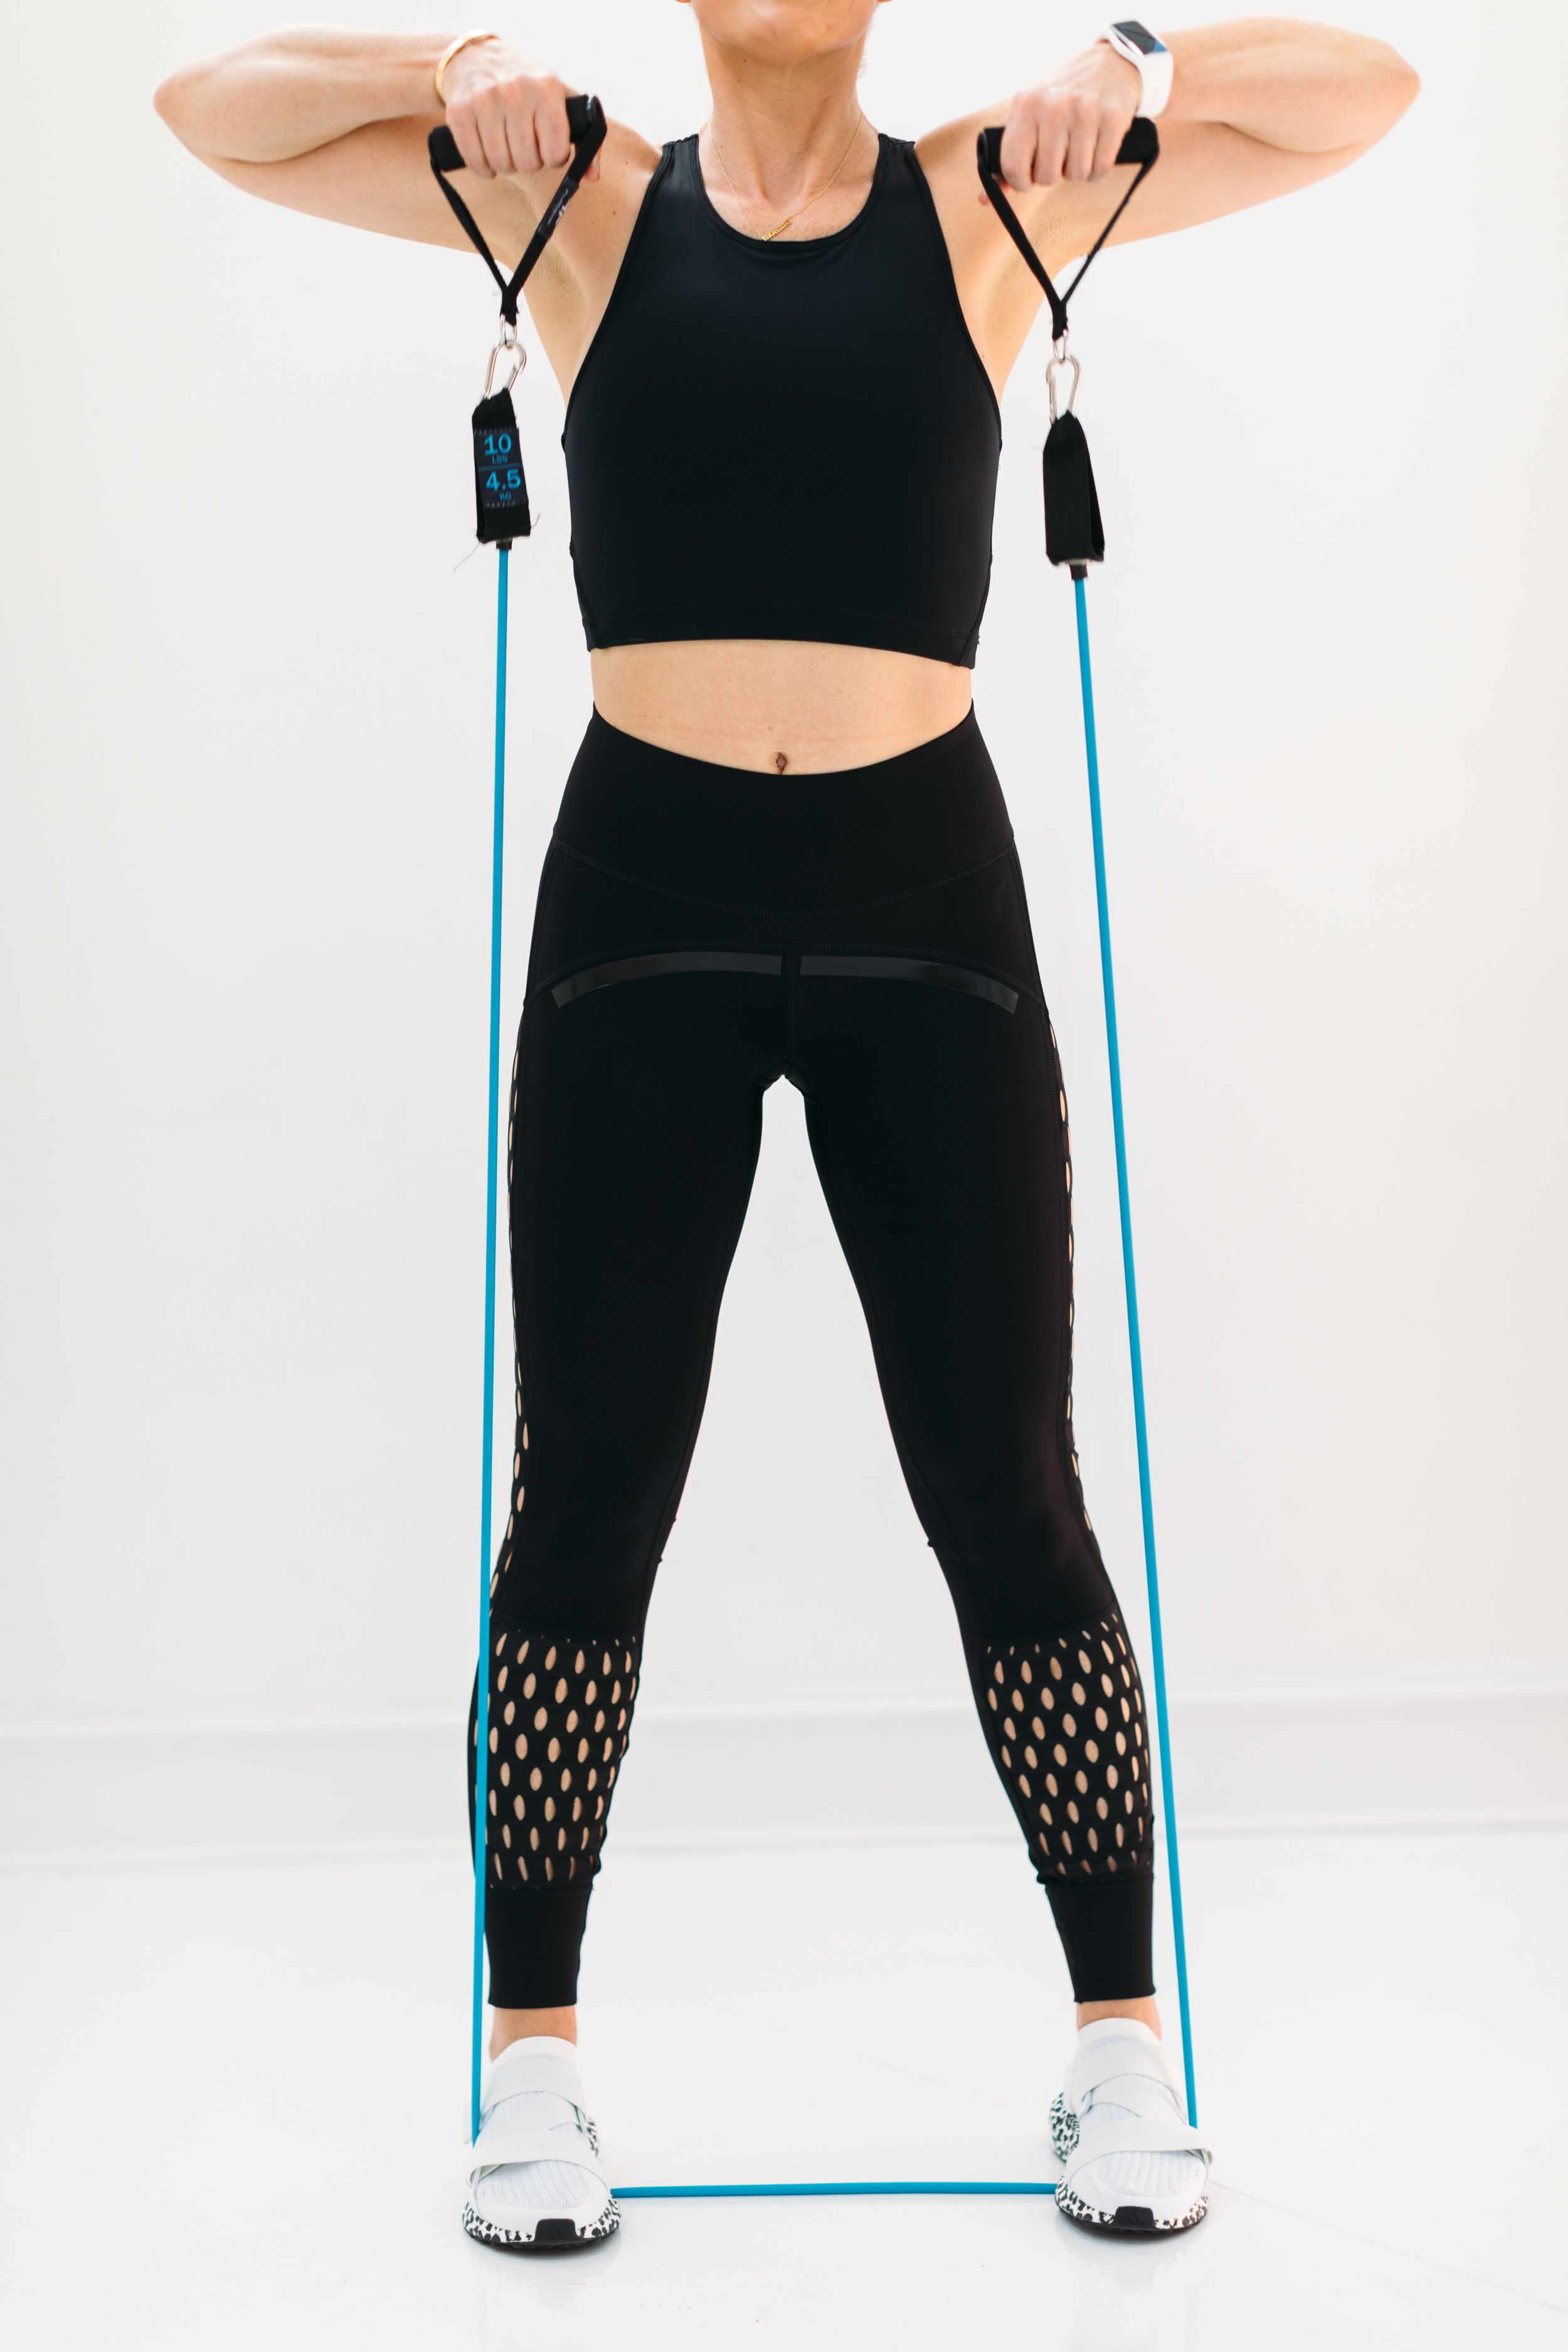 Pants and shoes are Stella McCartney X Adidas from Carbon38